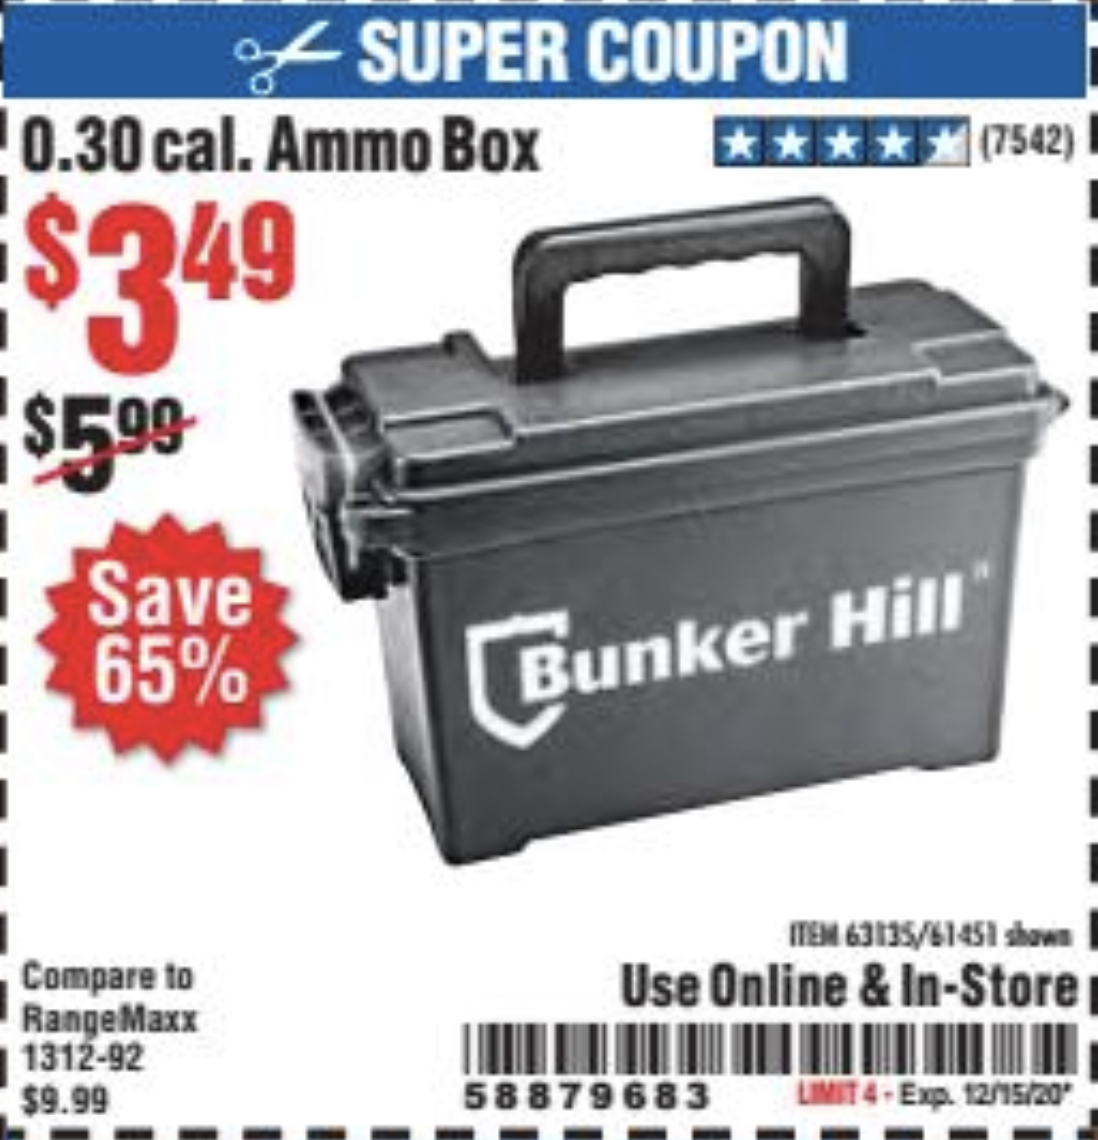 Harbor Freight BUNKER HILL 0.30 CAL. AMMO BOX coupon